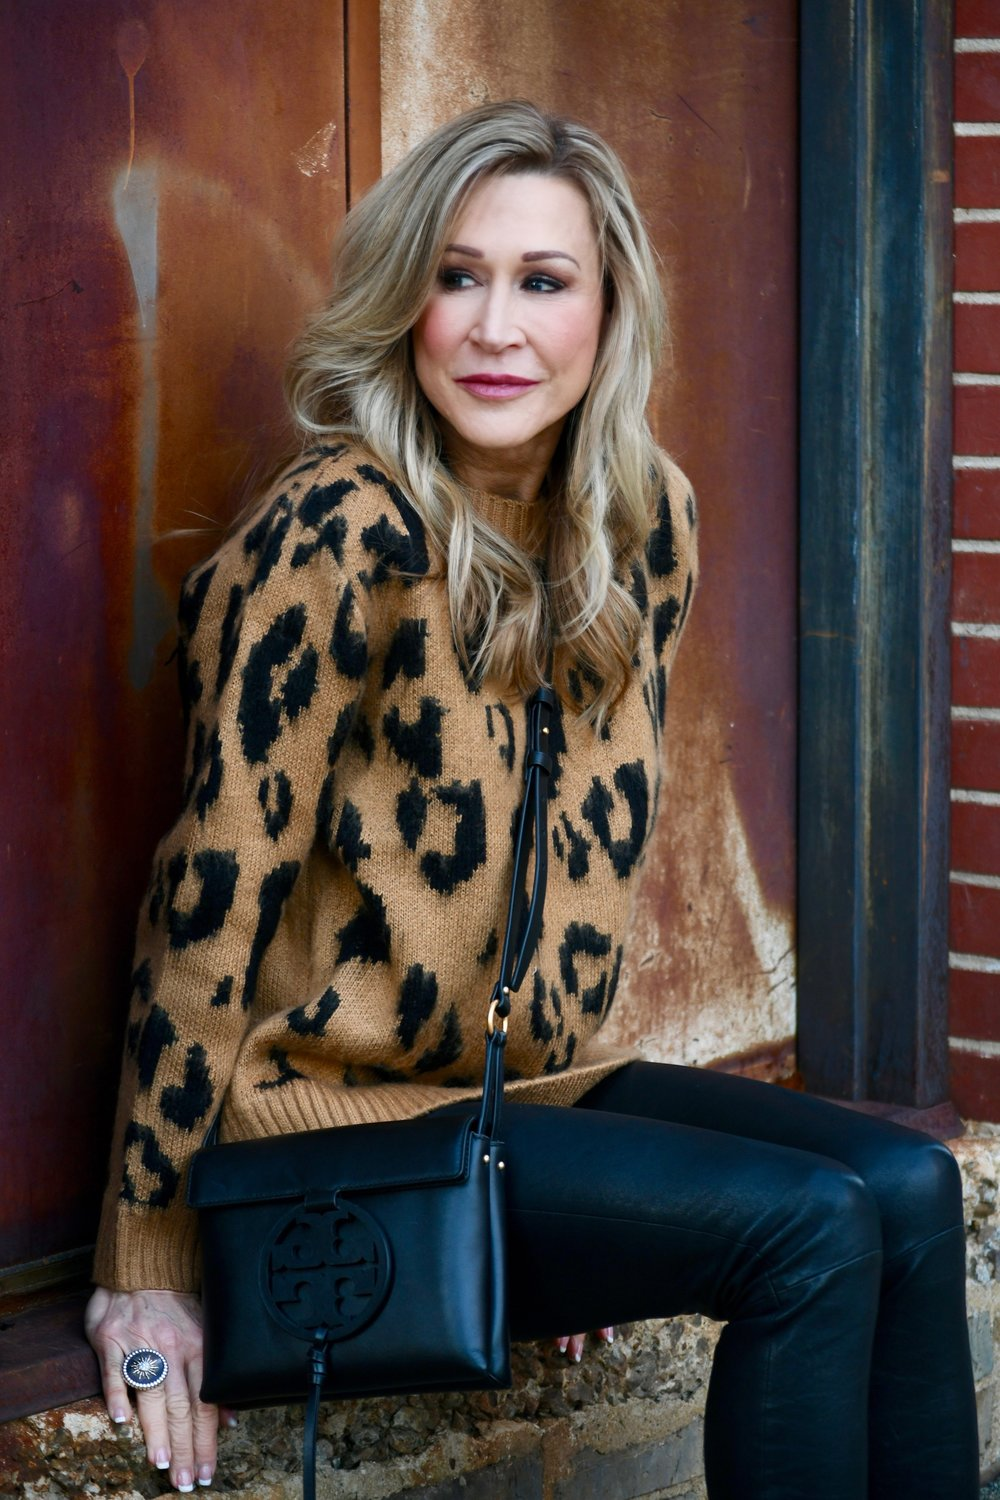 Leopard sweater with leather leggings